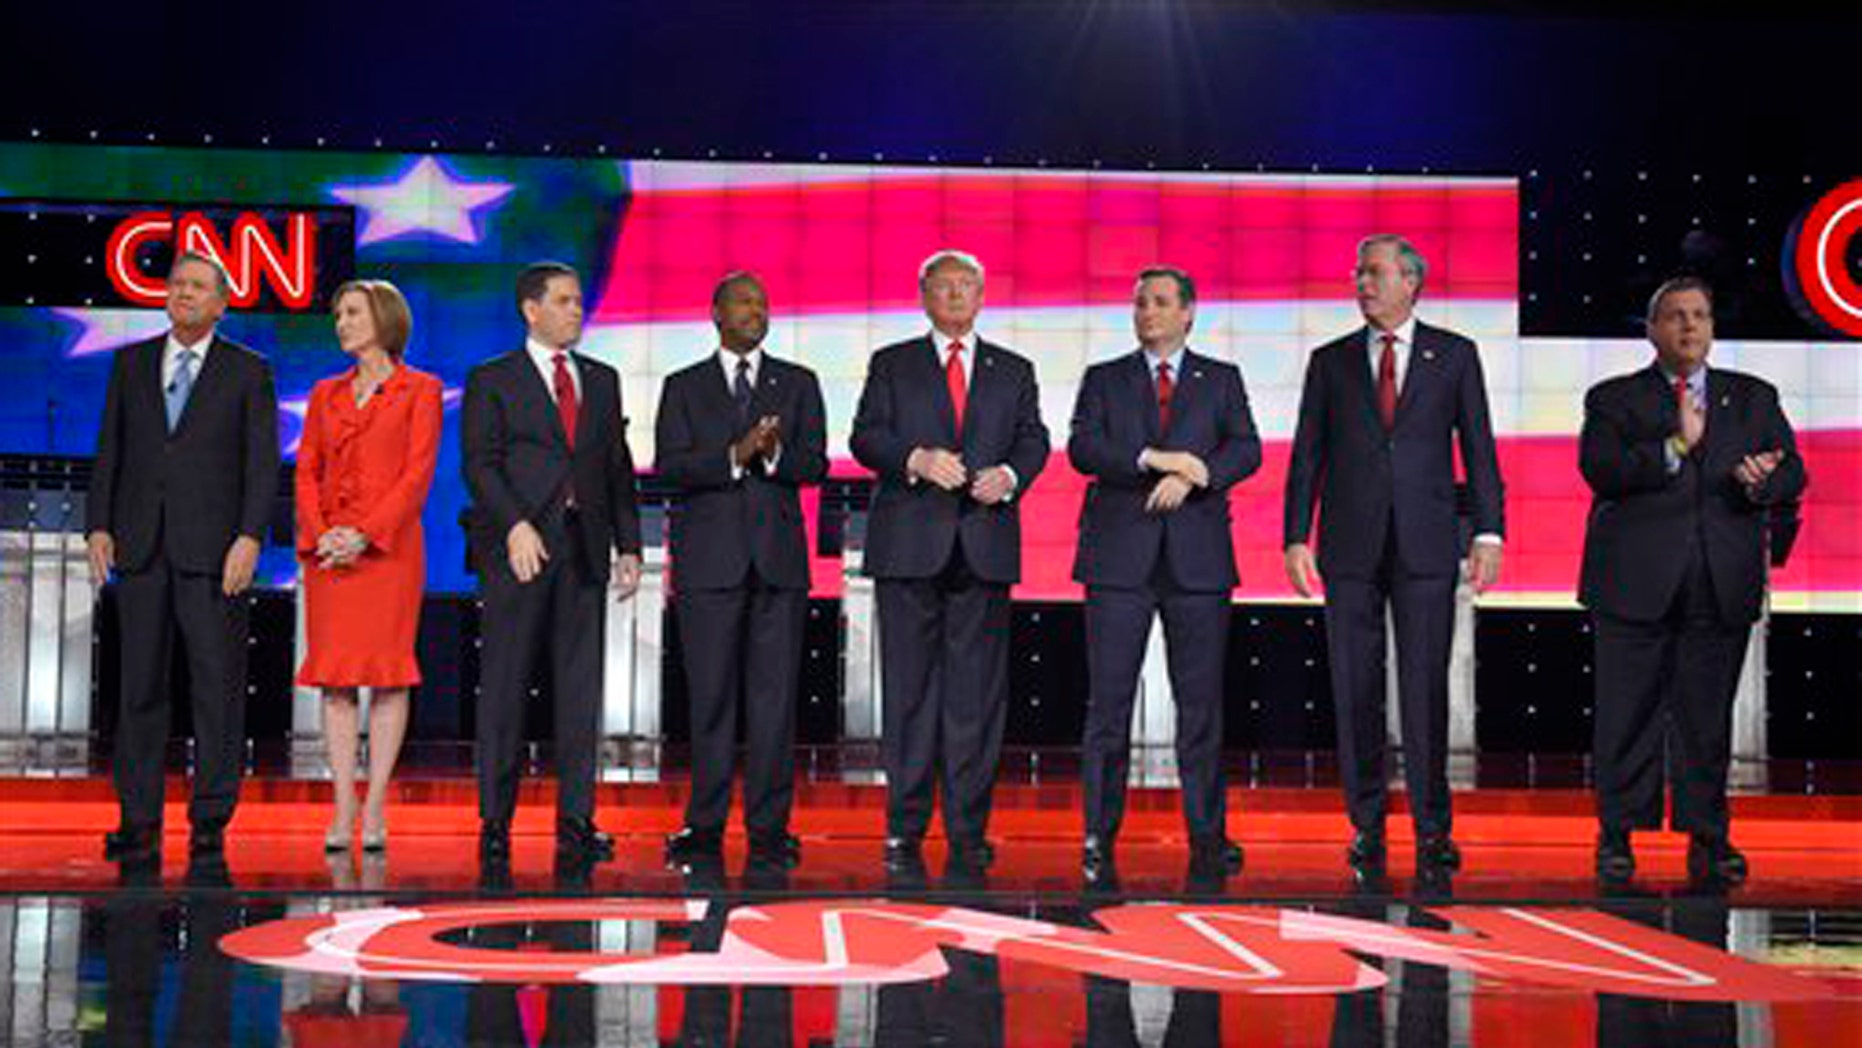 Republican presidential candidates, from left, John Kasich, Carly Fiorina, Marco Rubio, Ben Carson, Donald Trump, Ted Cruz, Jeb Bush, Chris Christie, and Rand Paul take the stage during the CNN Republican presidential debate at the Venetian Hotel & Casino on Tuesday, Dec. 15, 2015, in Las Vegas. (AP Photo/Mark J. Terrill)